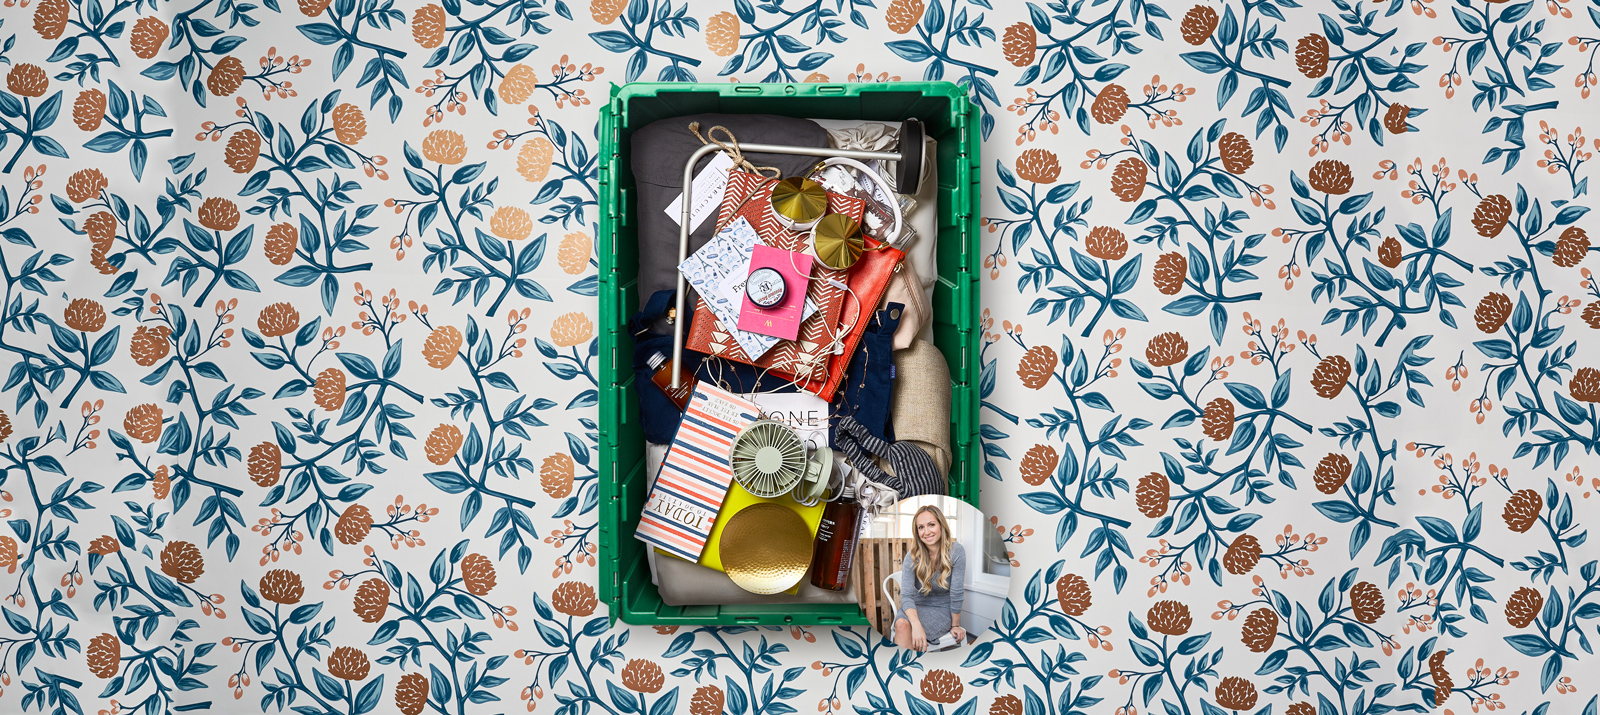 Hailing from Venice Beach, CA, Parachute CEO Ariel Kaye uses her MakeSpace bin for NYC storage.